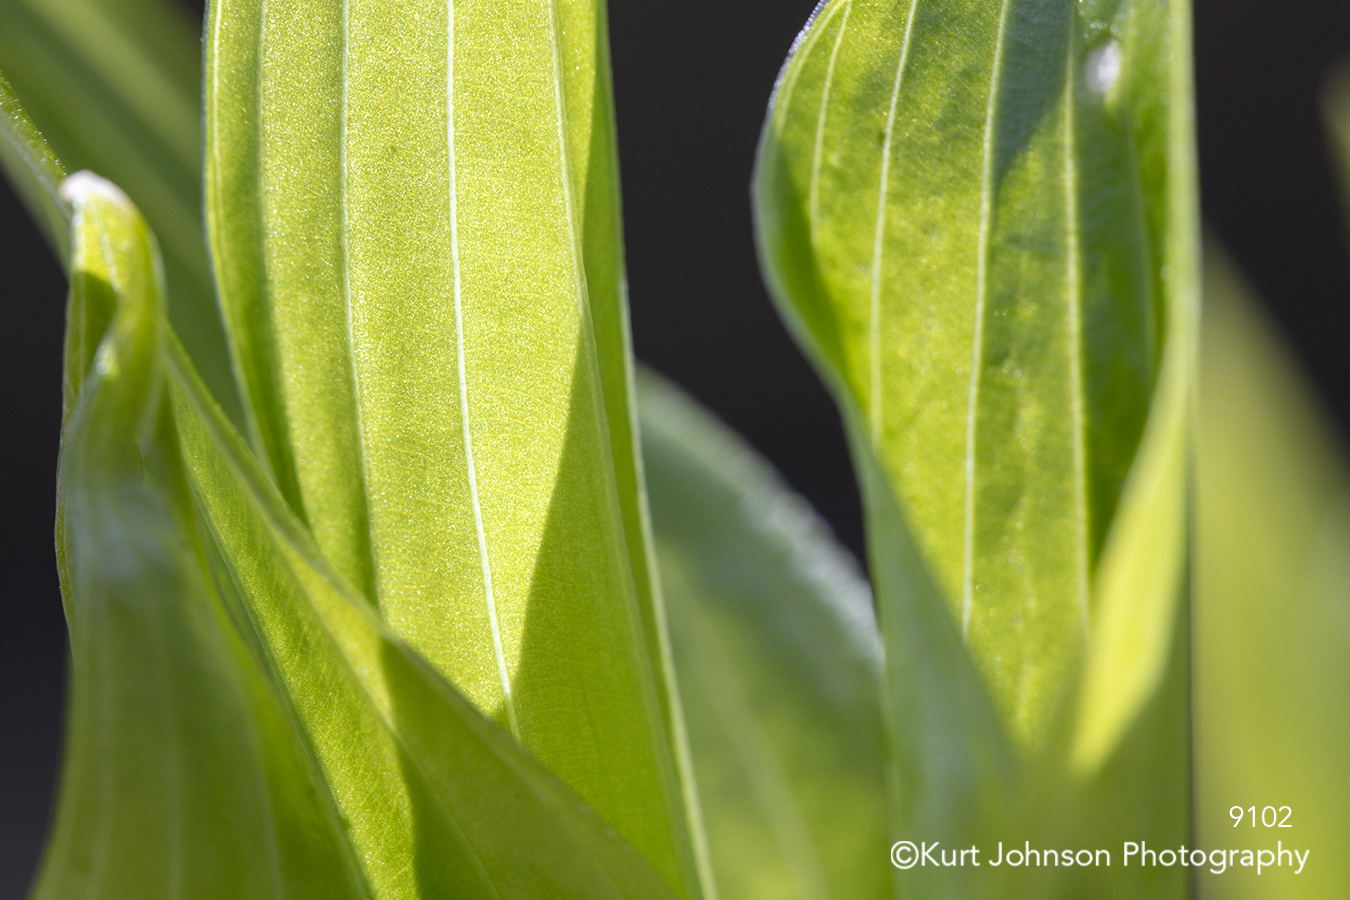 green leaves shadows light lines pattern texture plant close up detail